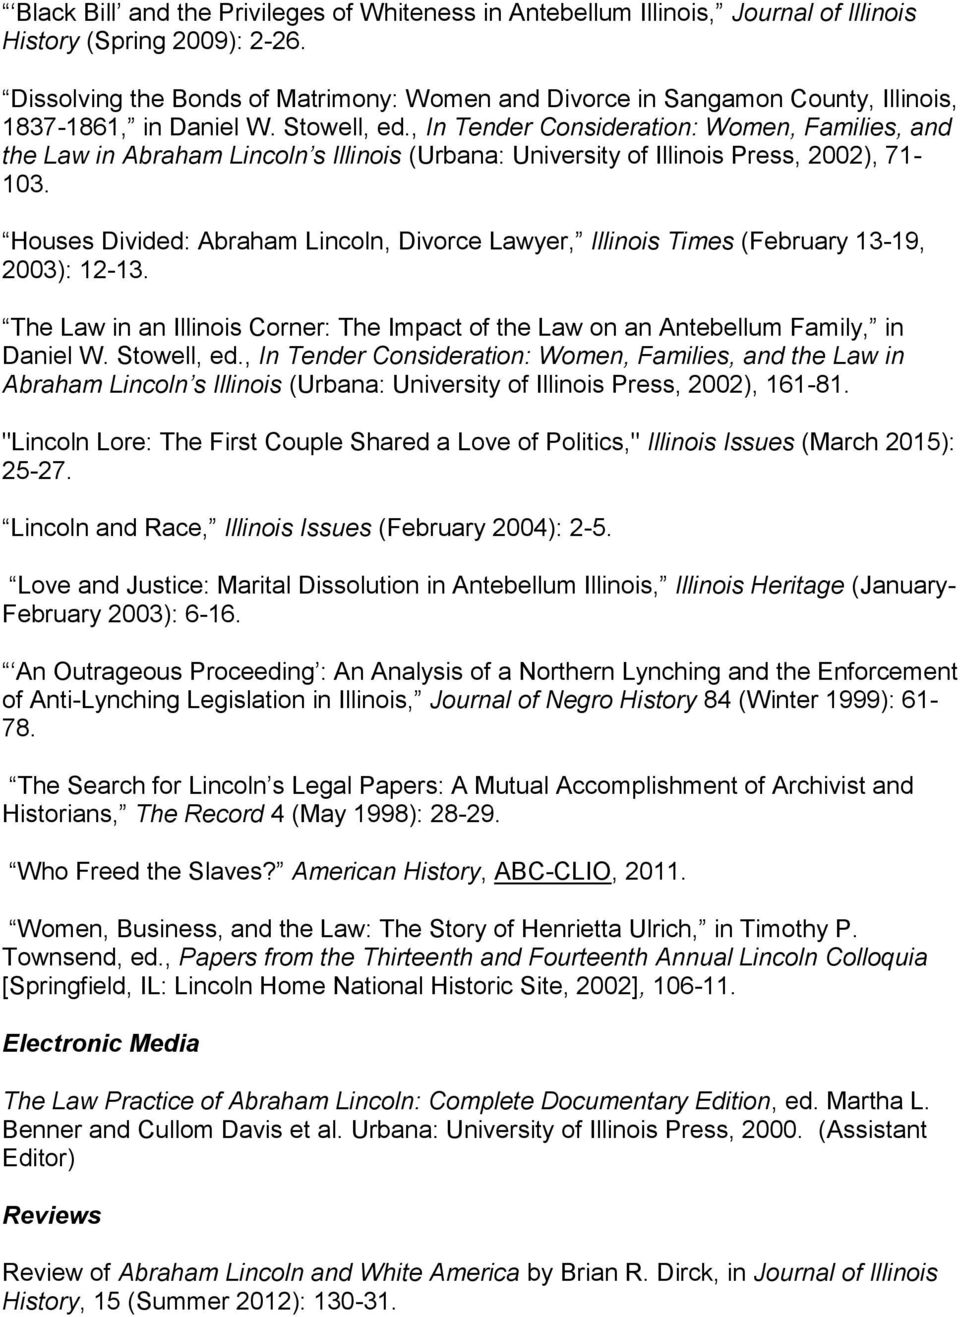 , In Tender Consideration: Women, Families, and the Law in Abraham Lincoln s Illinois (Urbana: University of Illinois Press, 2002), 71-103.